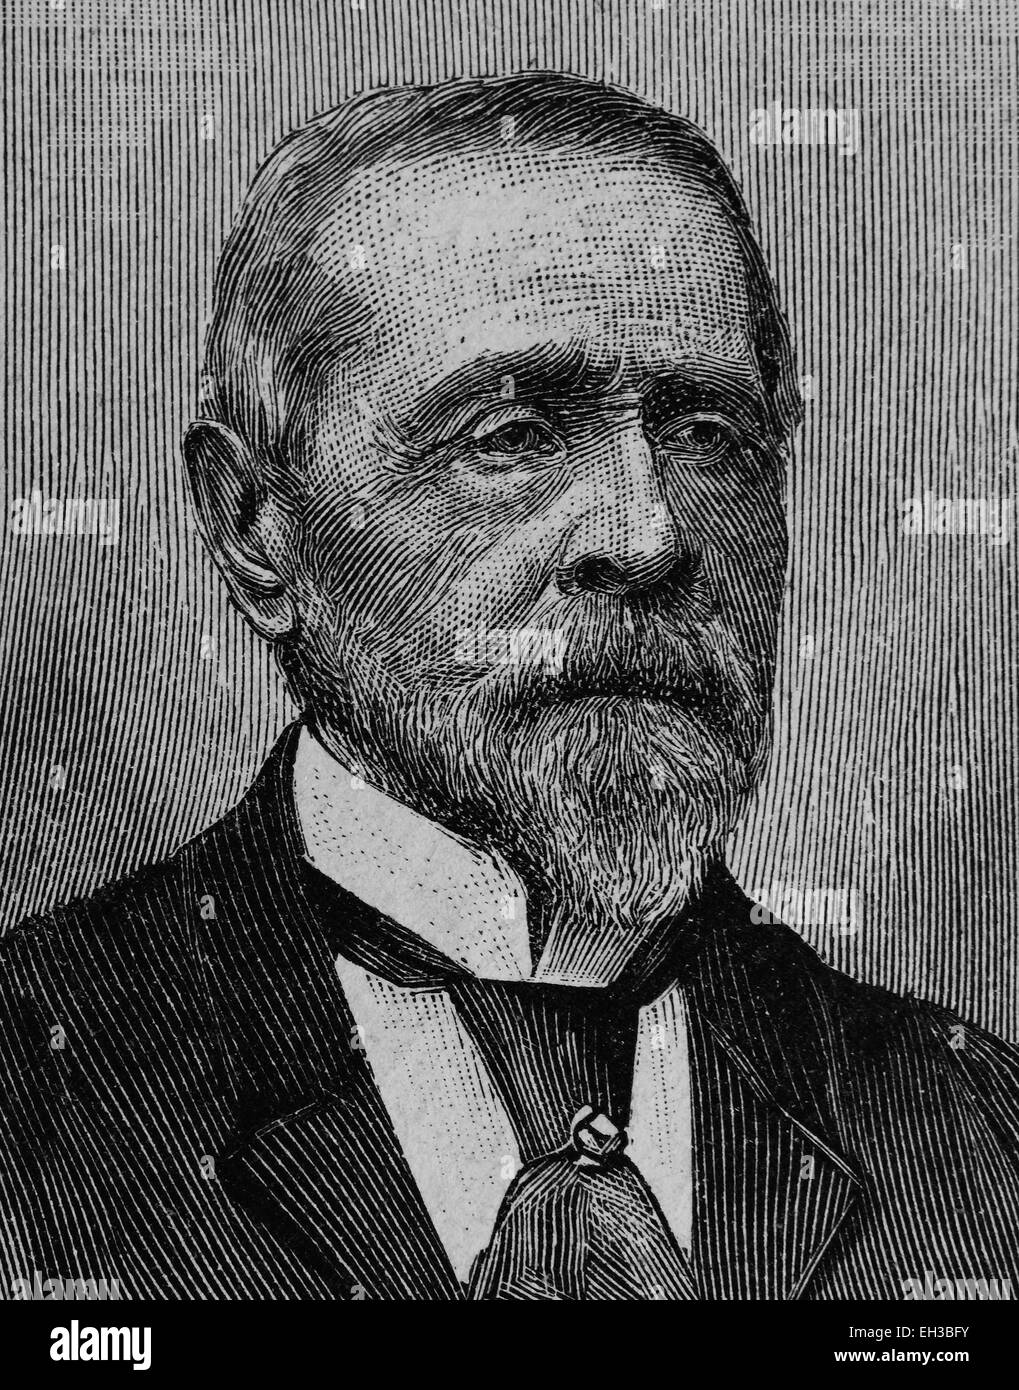 Moritz Edler von Mayfeld, 1817-1904, member of Frankfurt Parliament, wood engraving, about 1880 - Stock Image